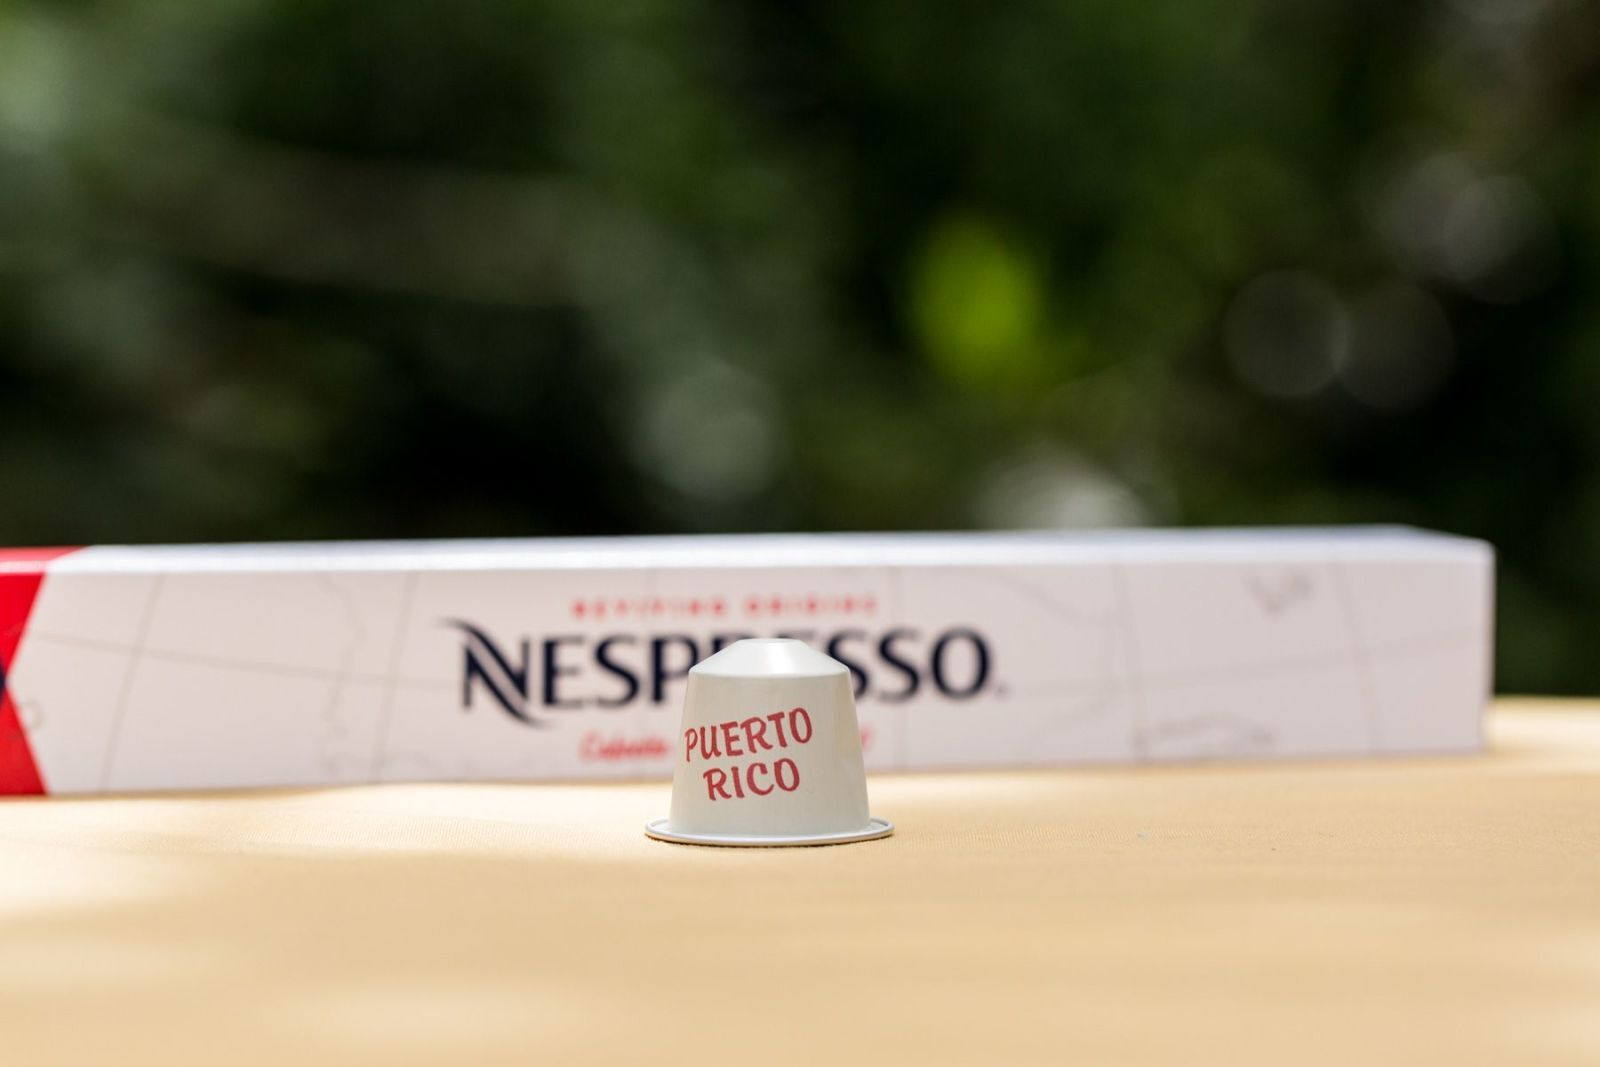 Nespresso adds its first Puerto Rican coffee as part of Reviving Origins